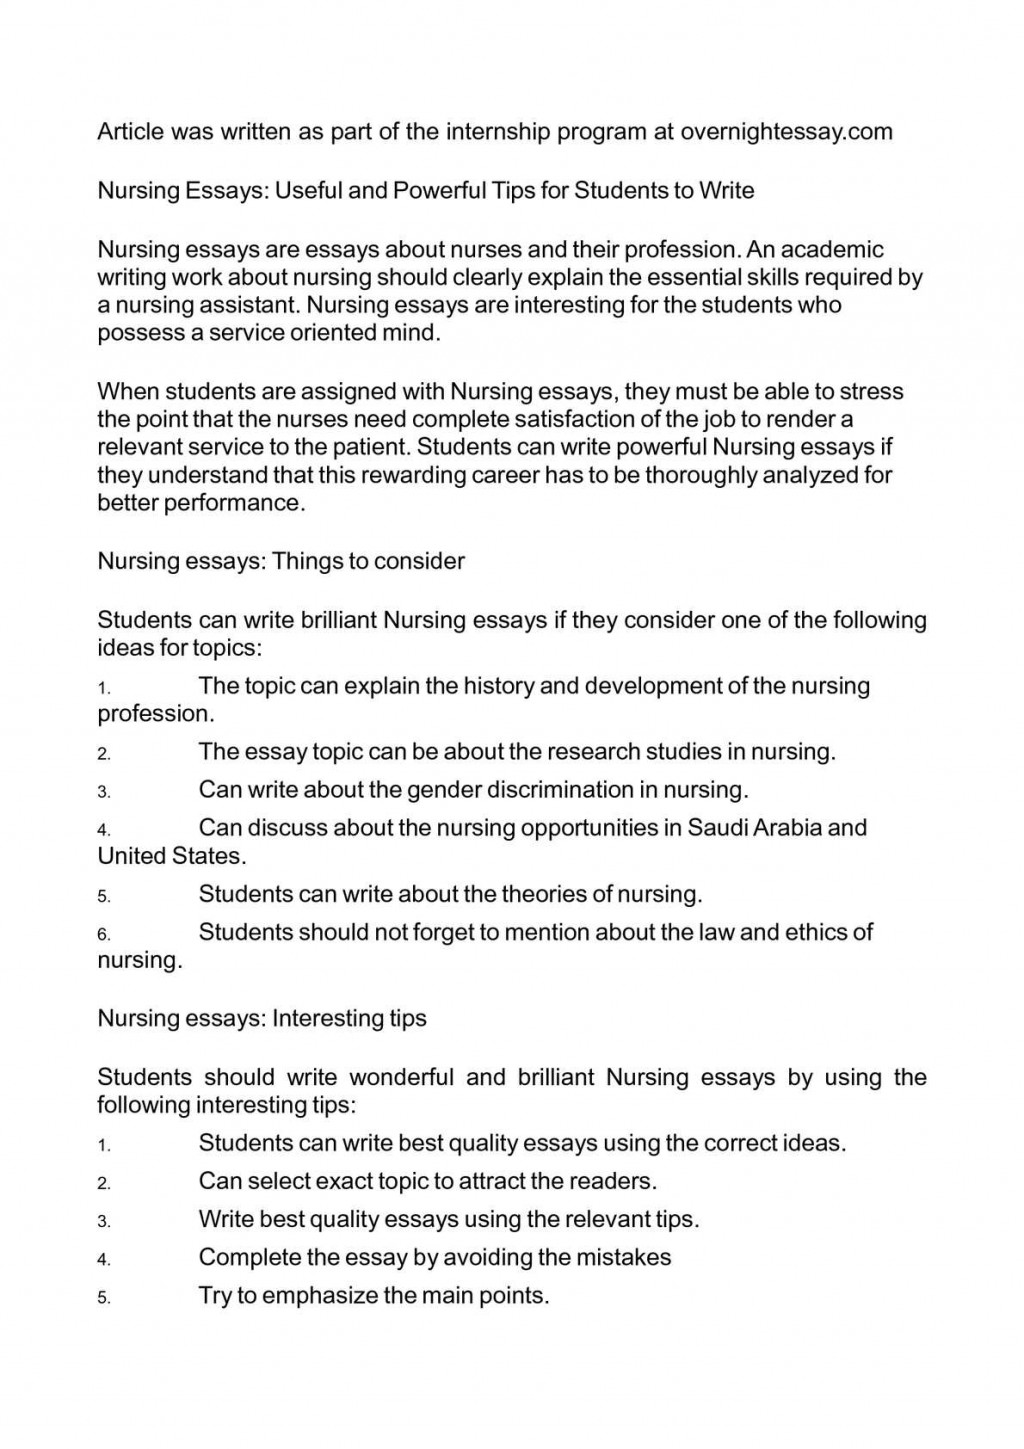 003 P1 Essay Example On Nursing As Shocking A Profession Professionalism In Pakistan Large